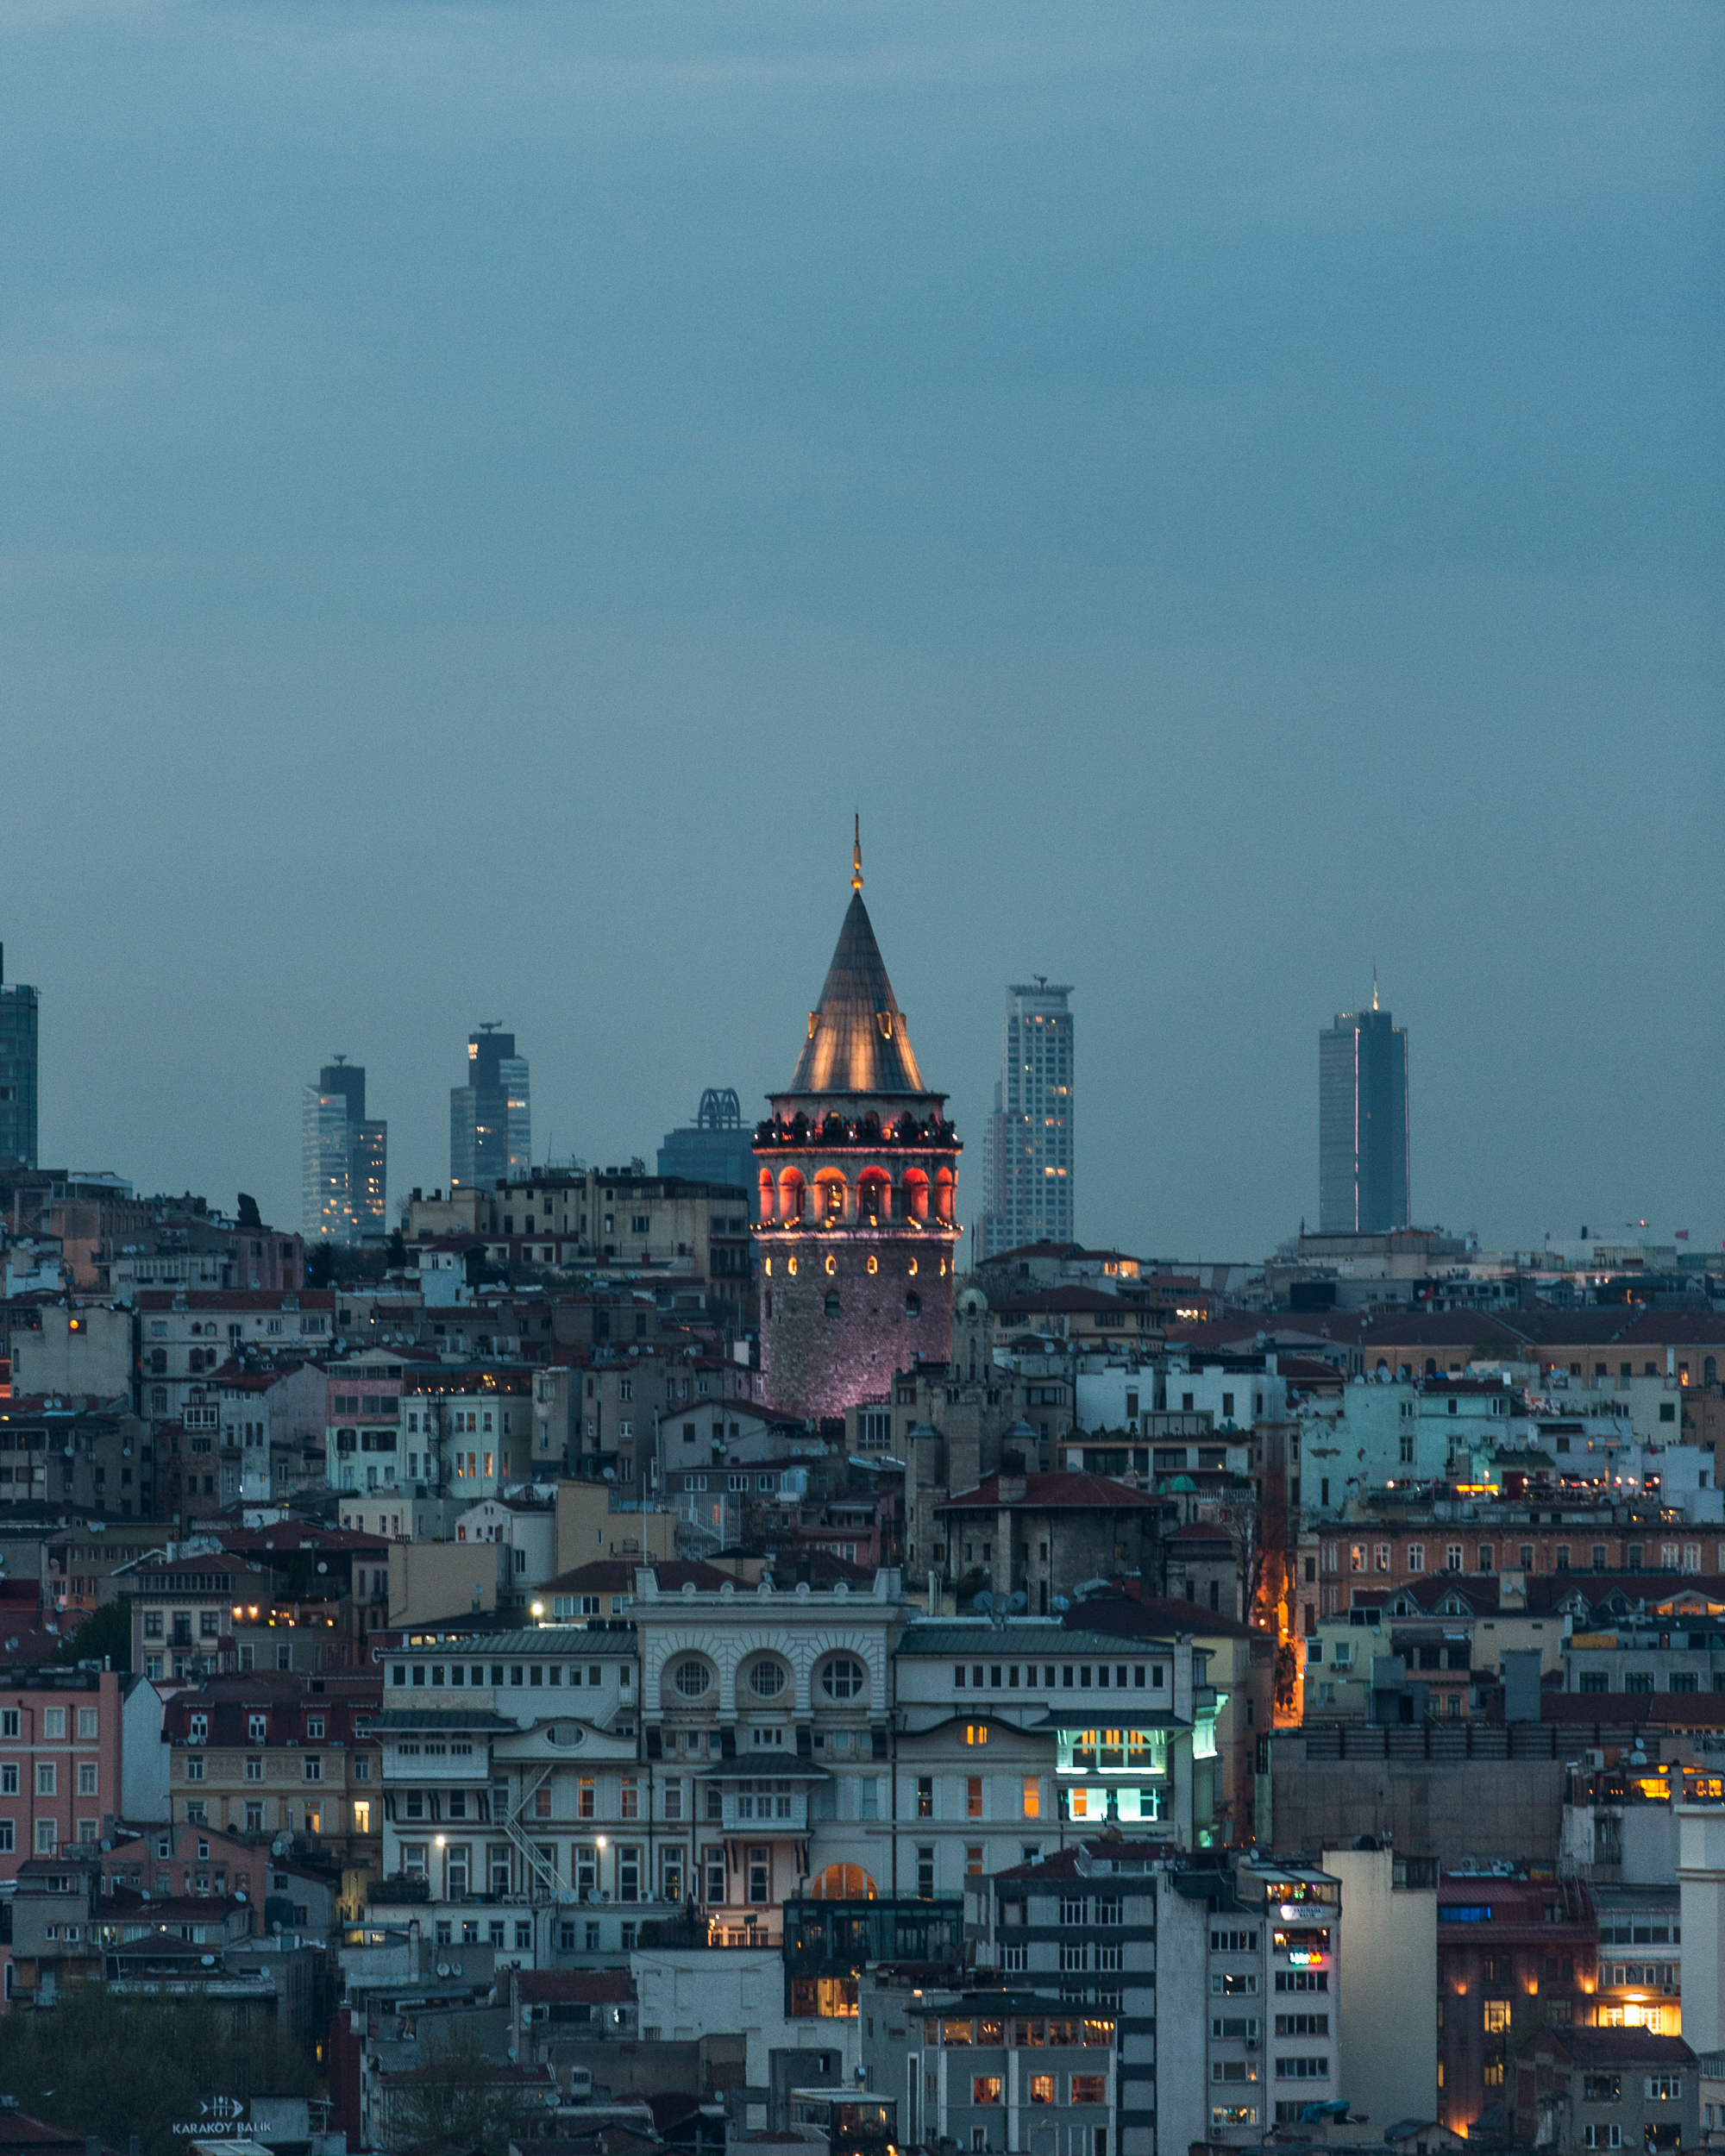 Galata Tower seen from across the Golden Horn